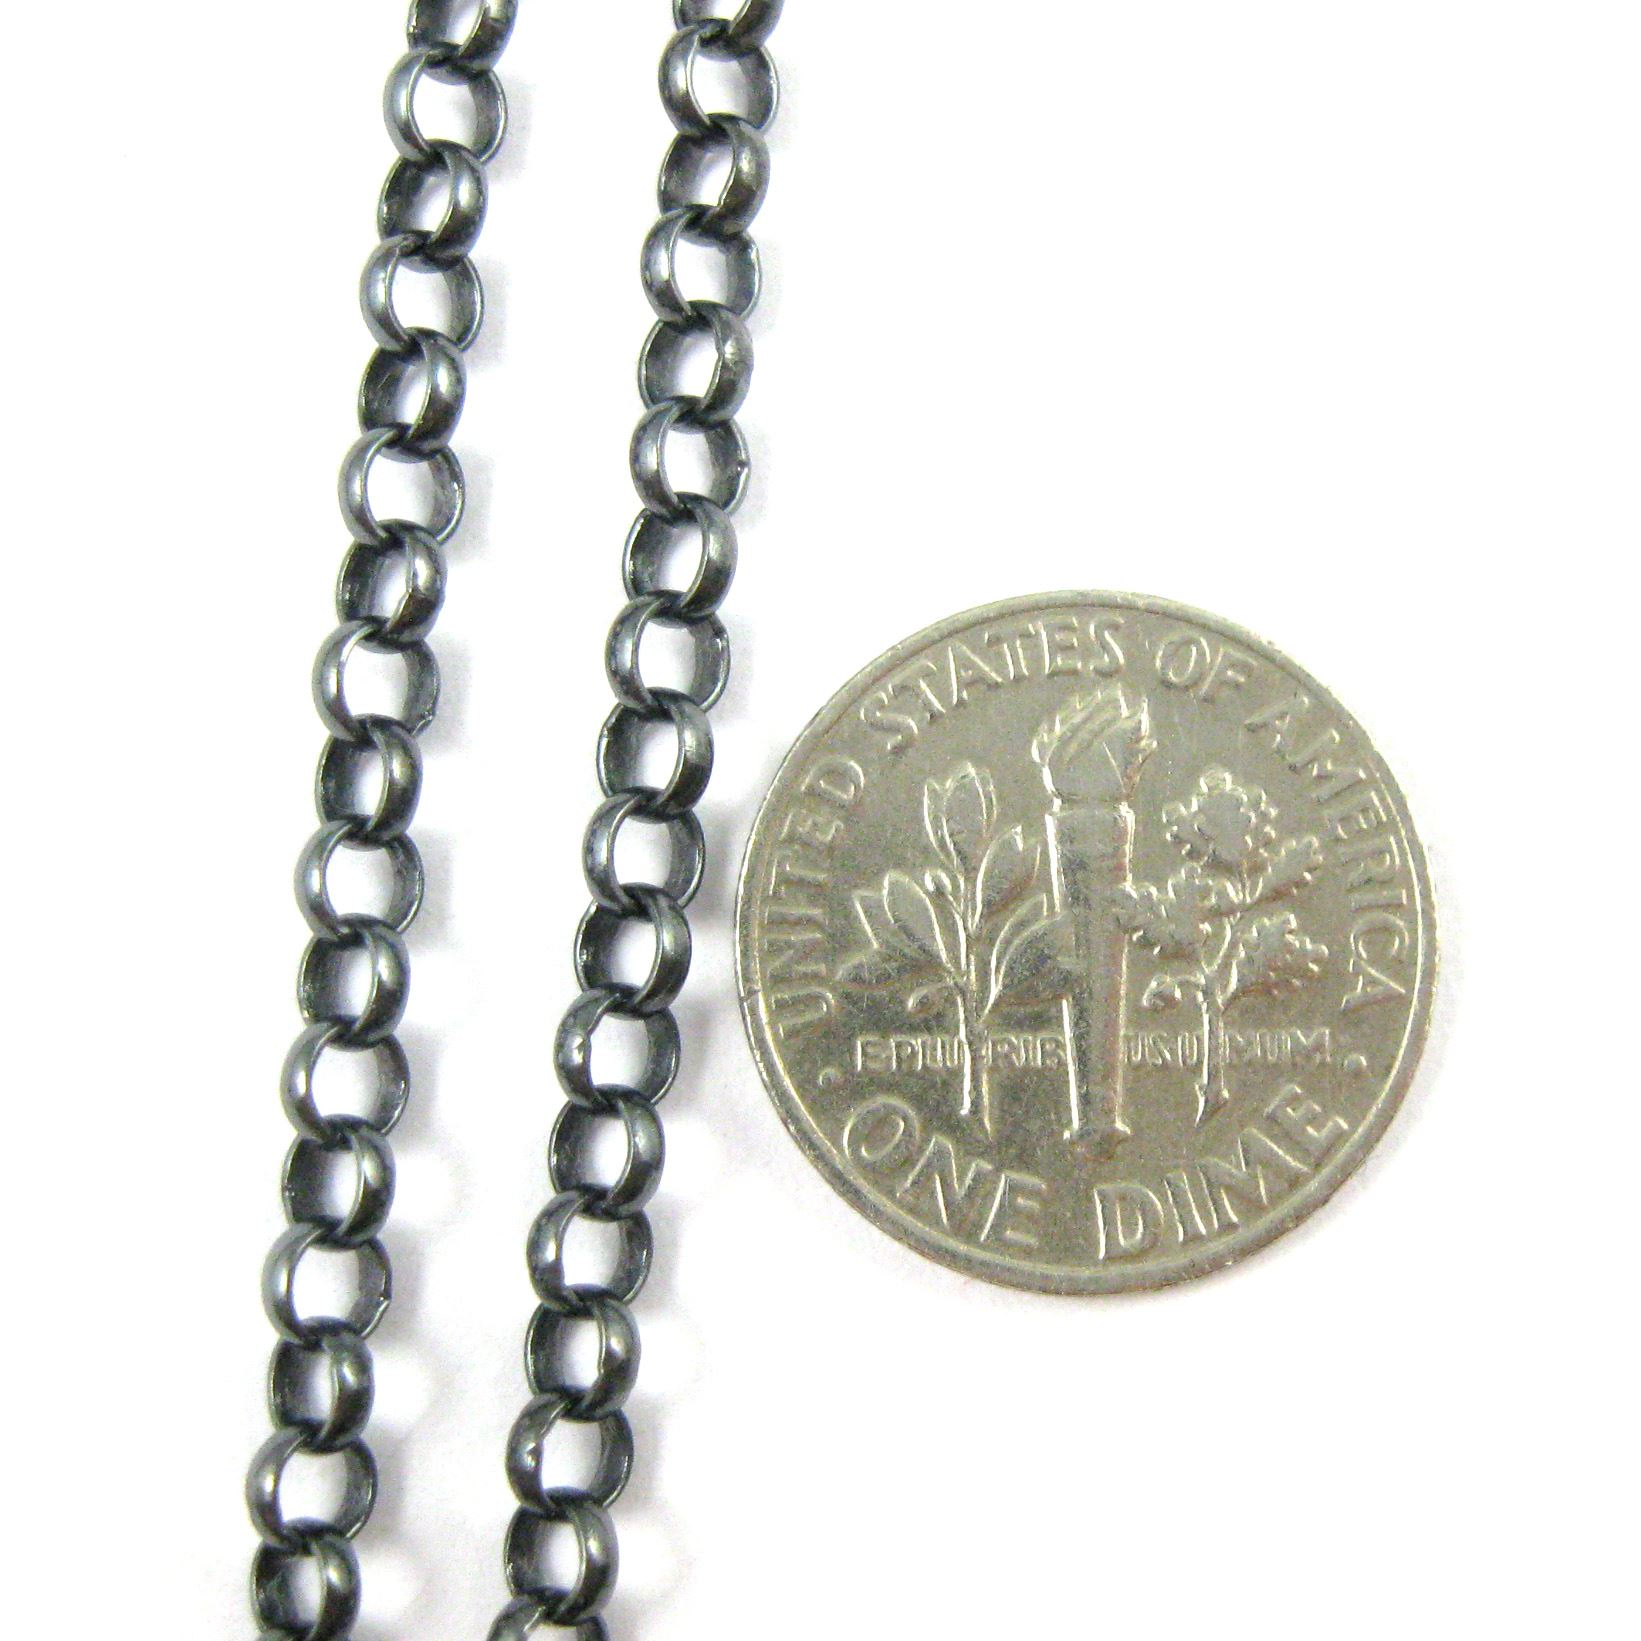 Oxidized Sterling Silver Chain- 3.5mm Rolo Chain. Bulk unfinished by the foot.